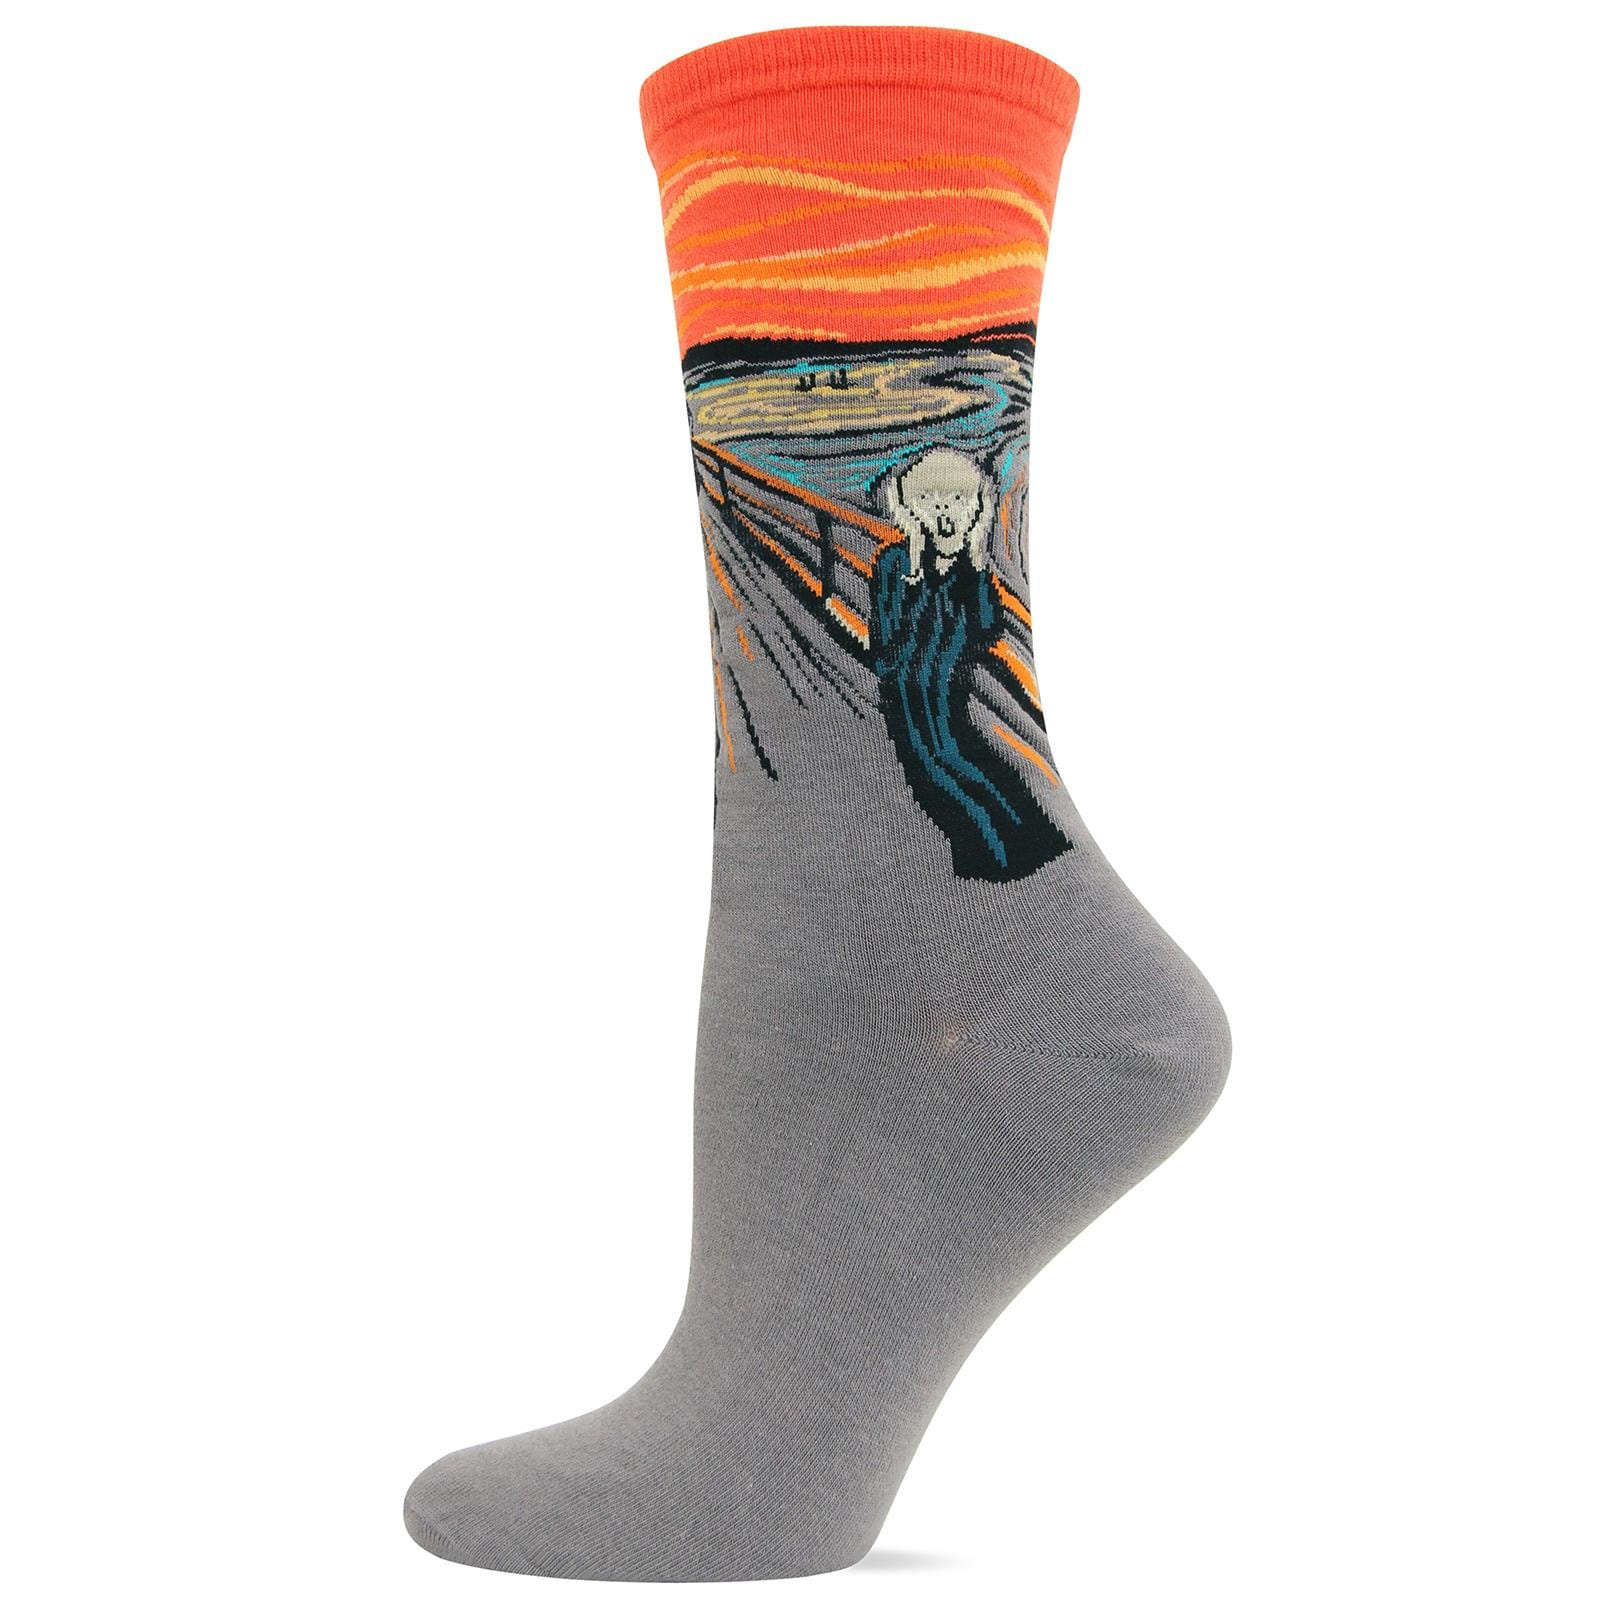 The Scream Women's Crew Sock Orange